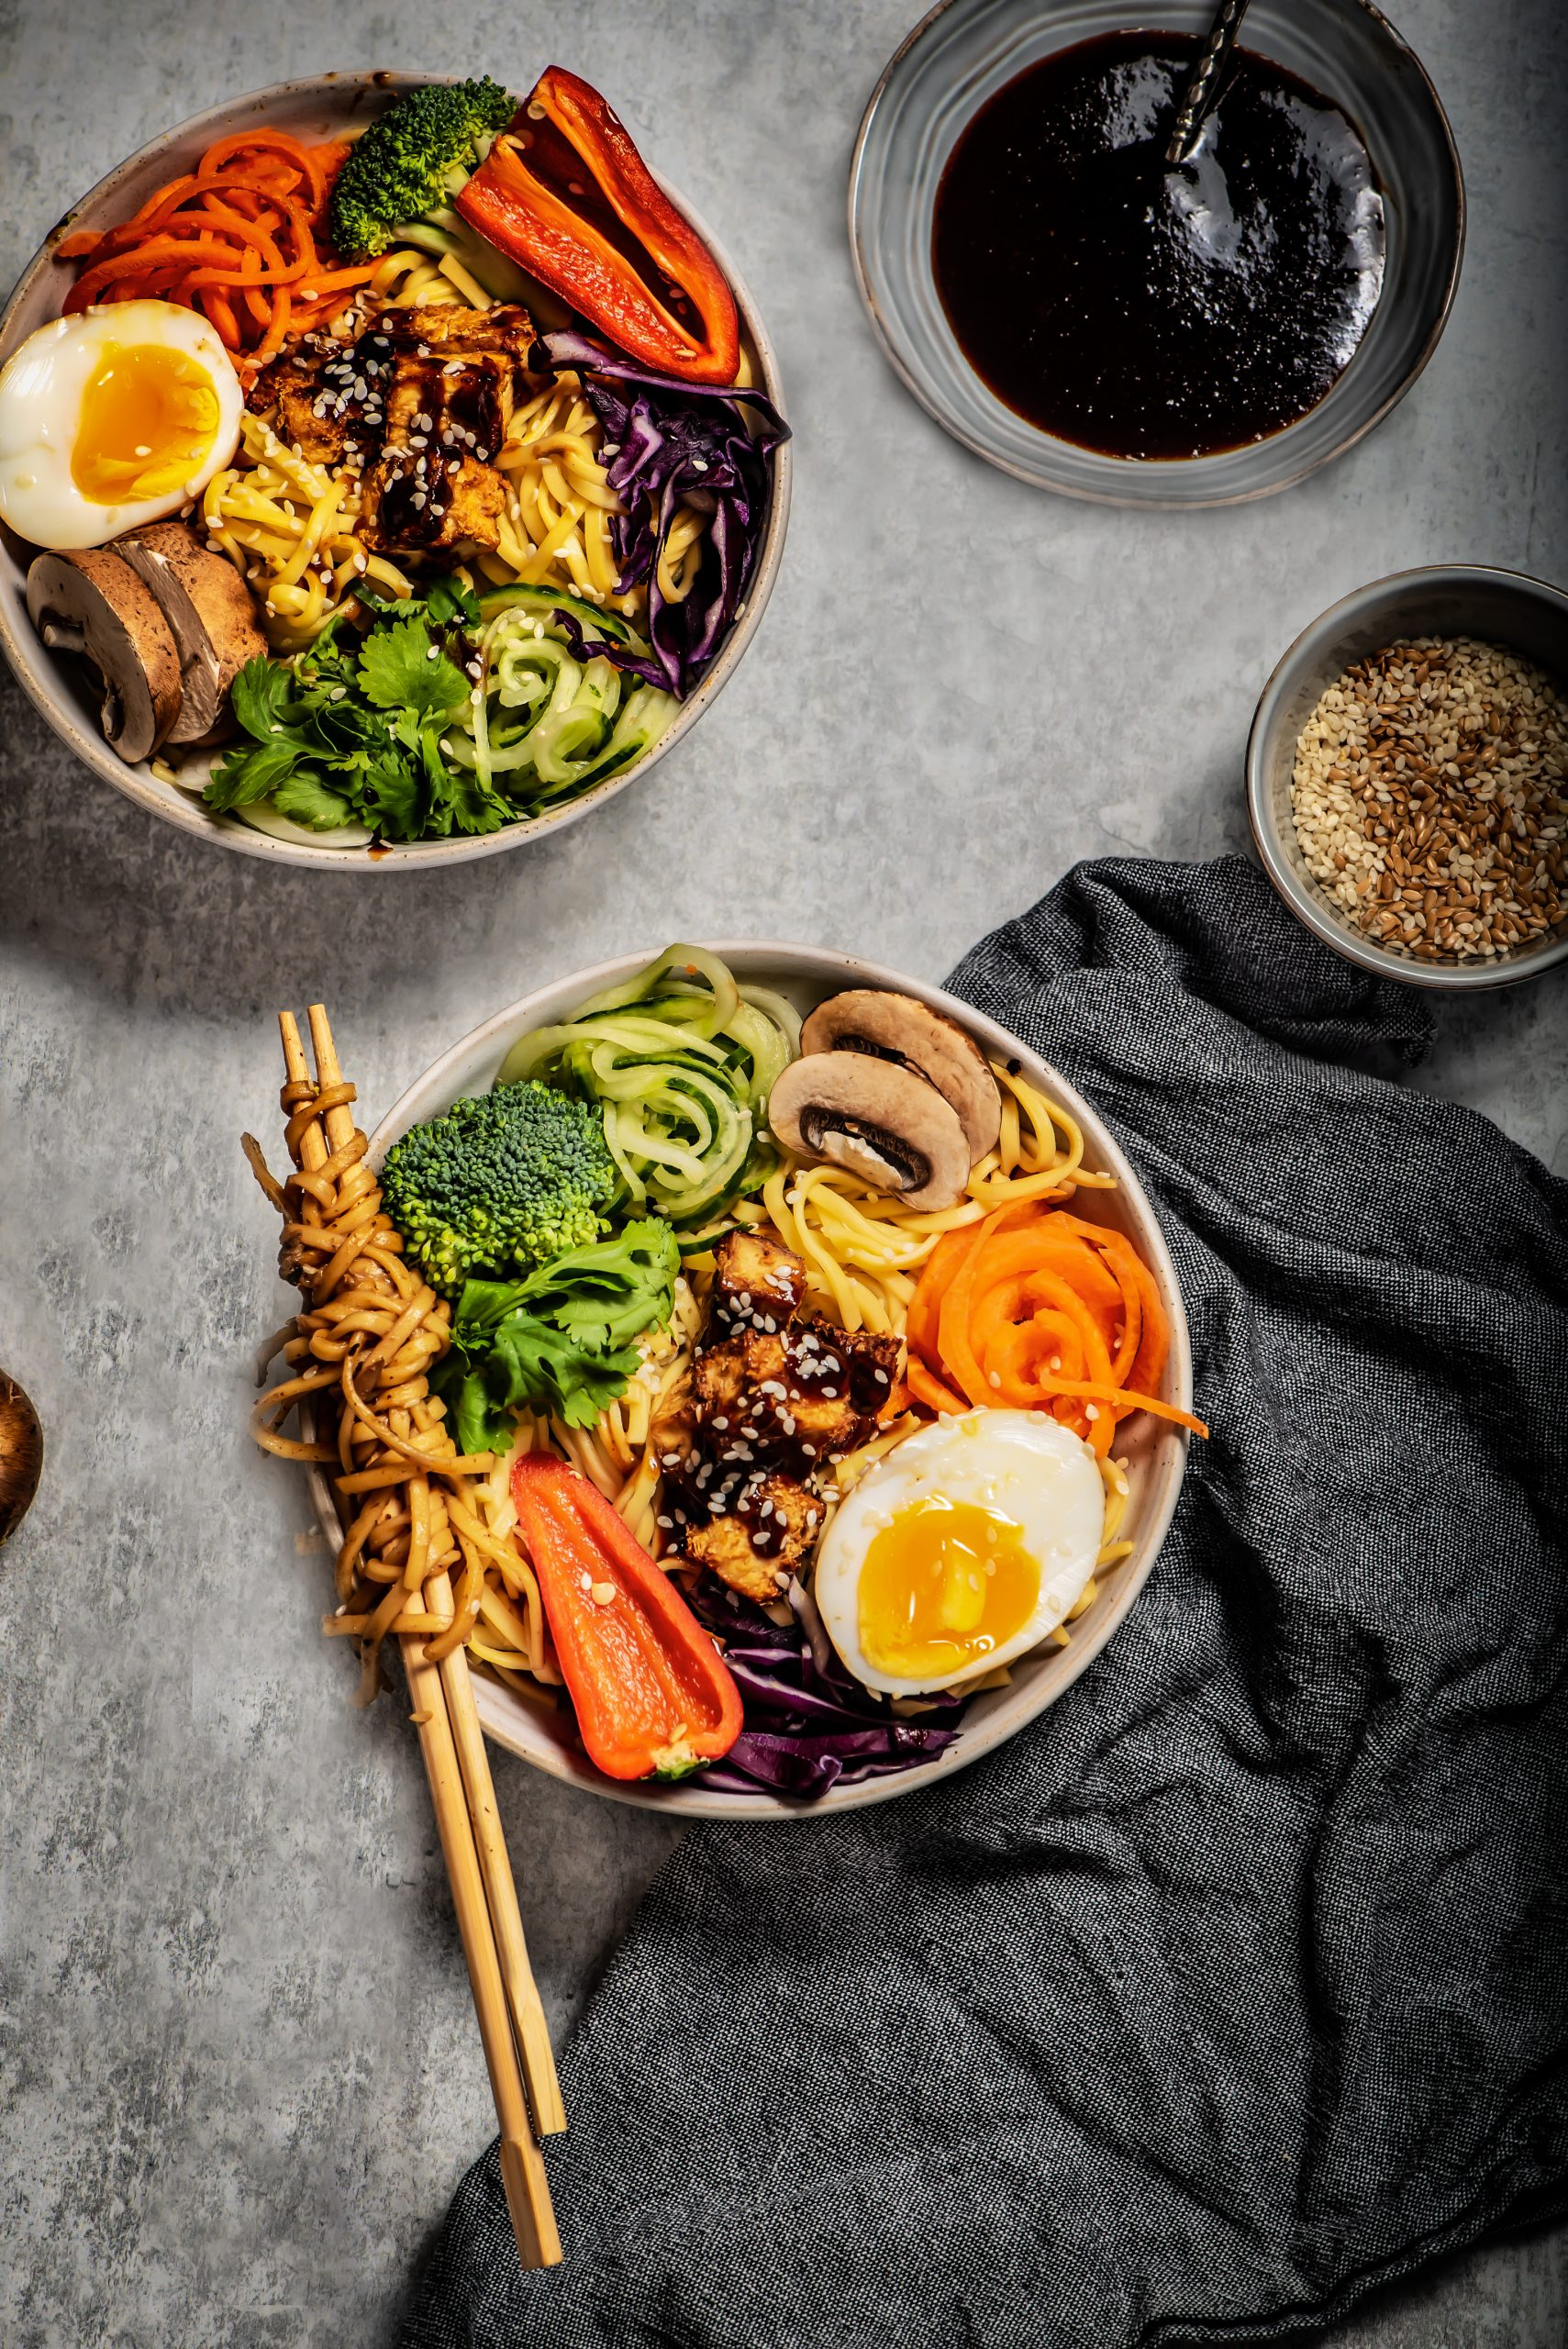 Flatlay of tofu noodle bowl with 2 bowls and spiralled vegetables and noodles twisted on a chopstick